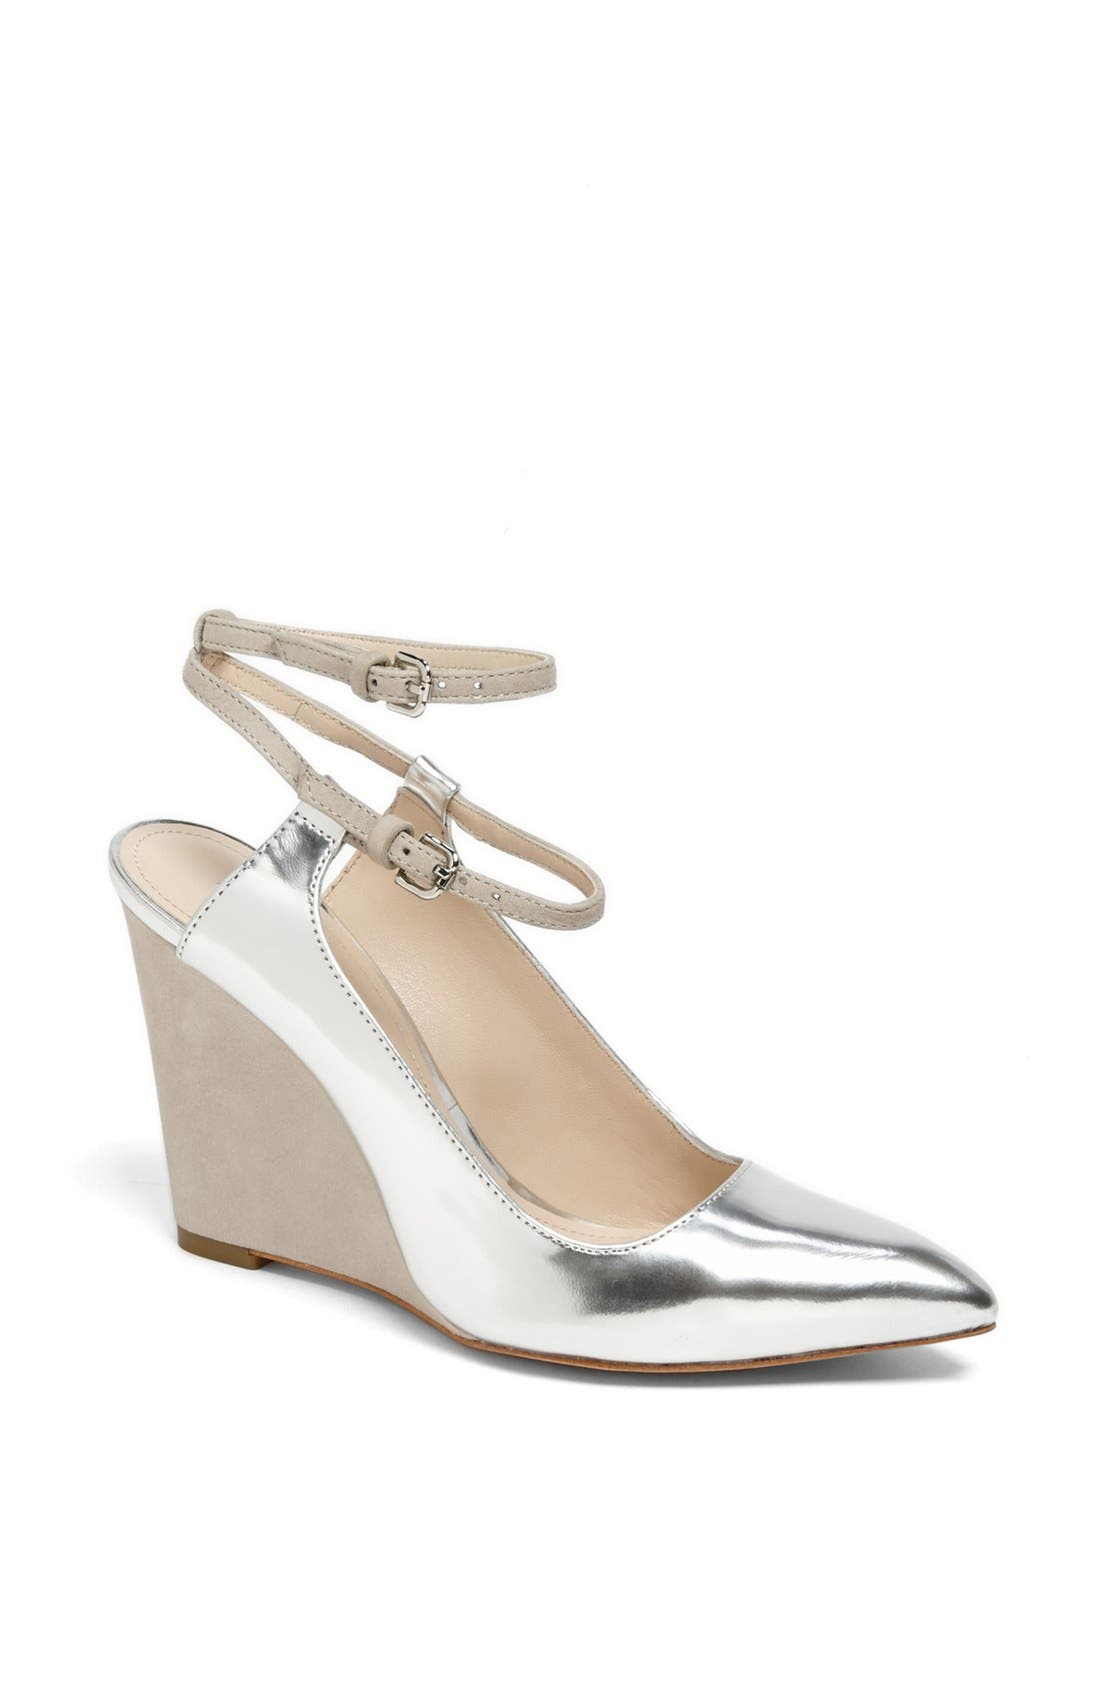 Main Image - COACH 'Ollie' Pointy Toe Wedge Pump